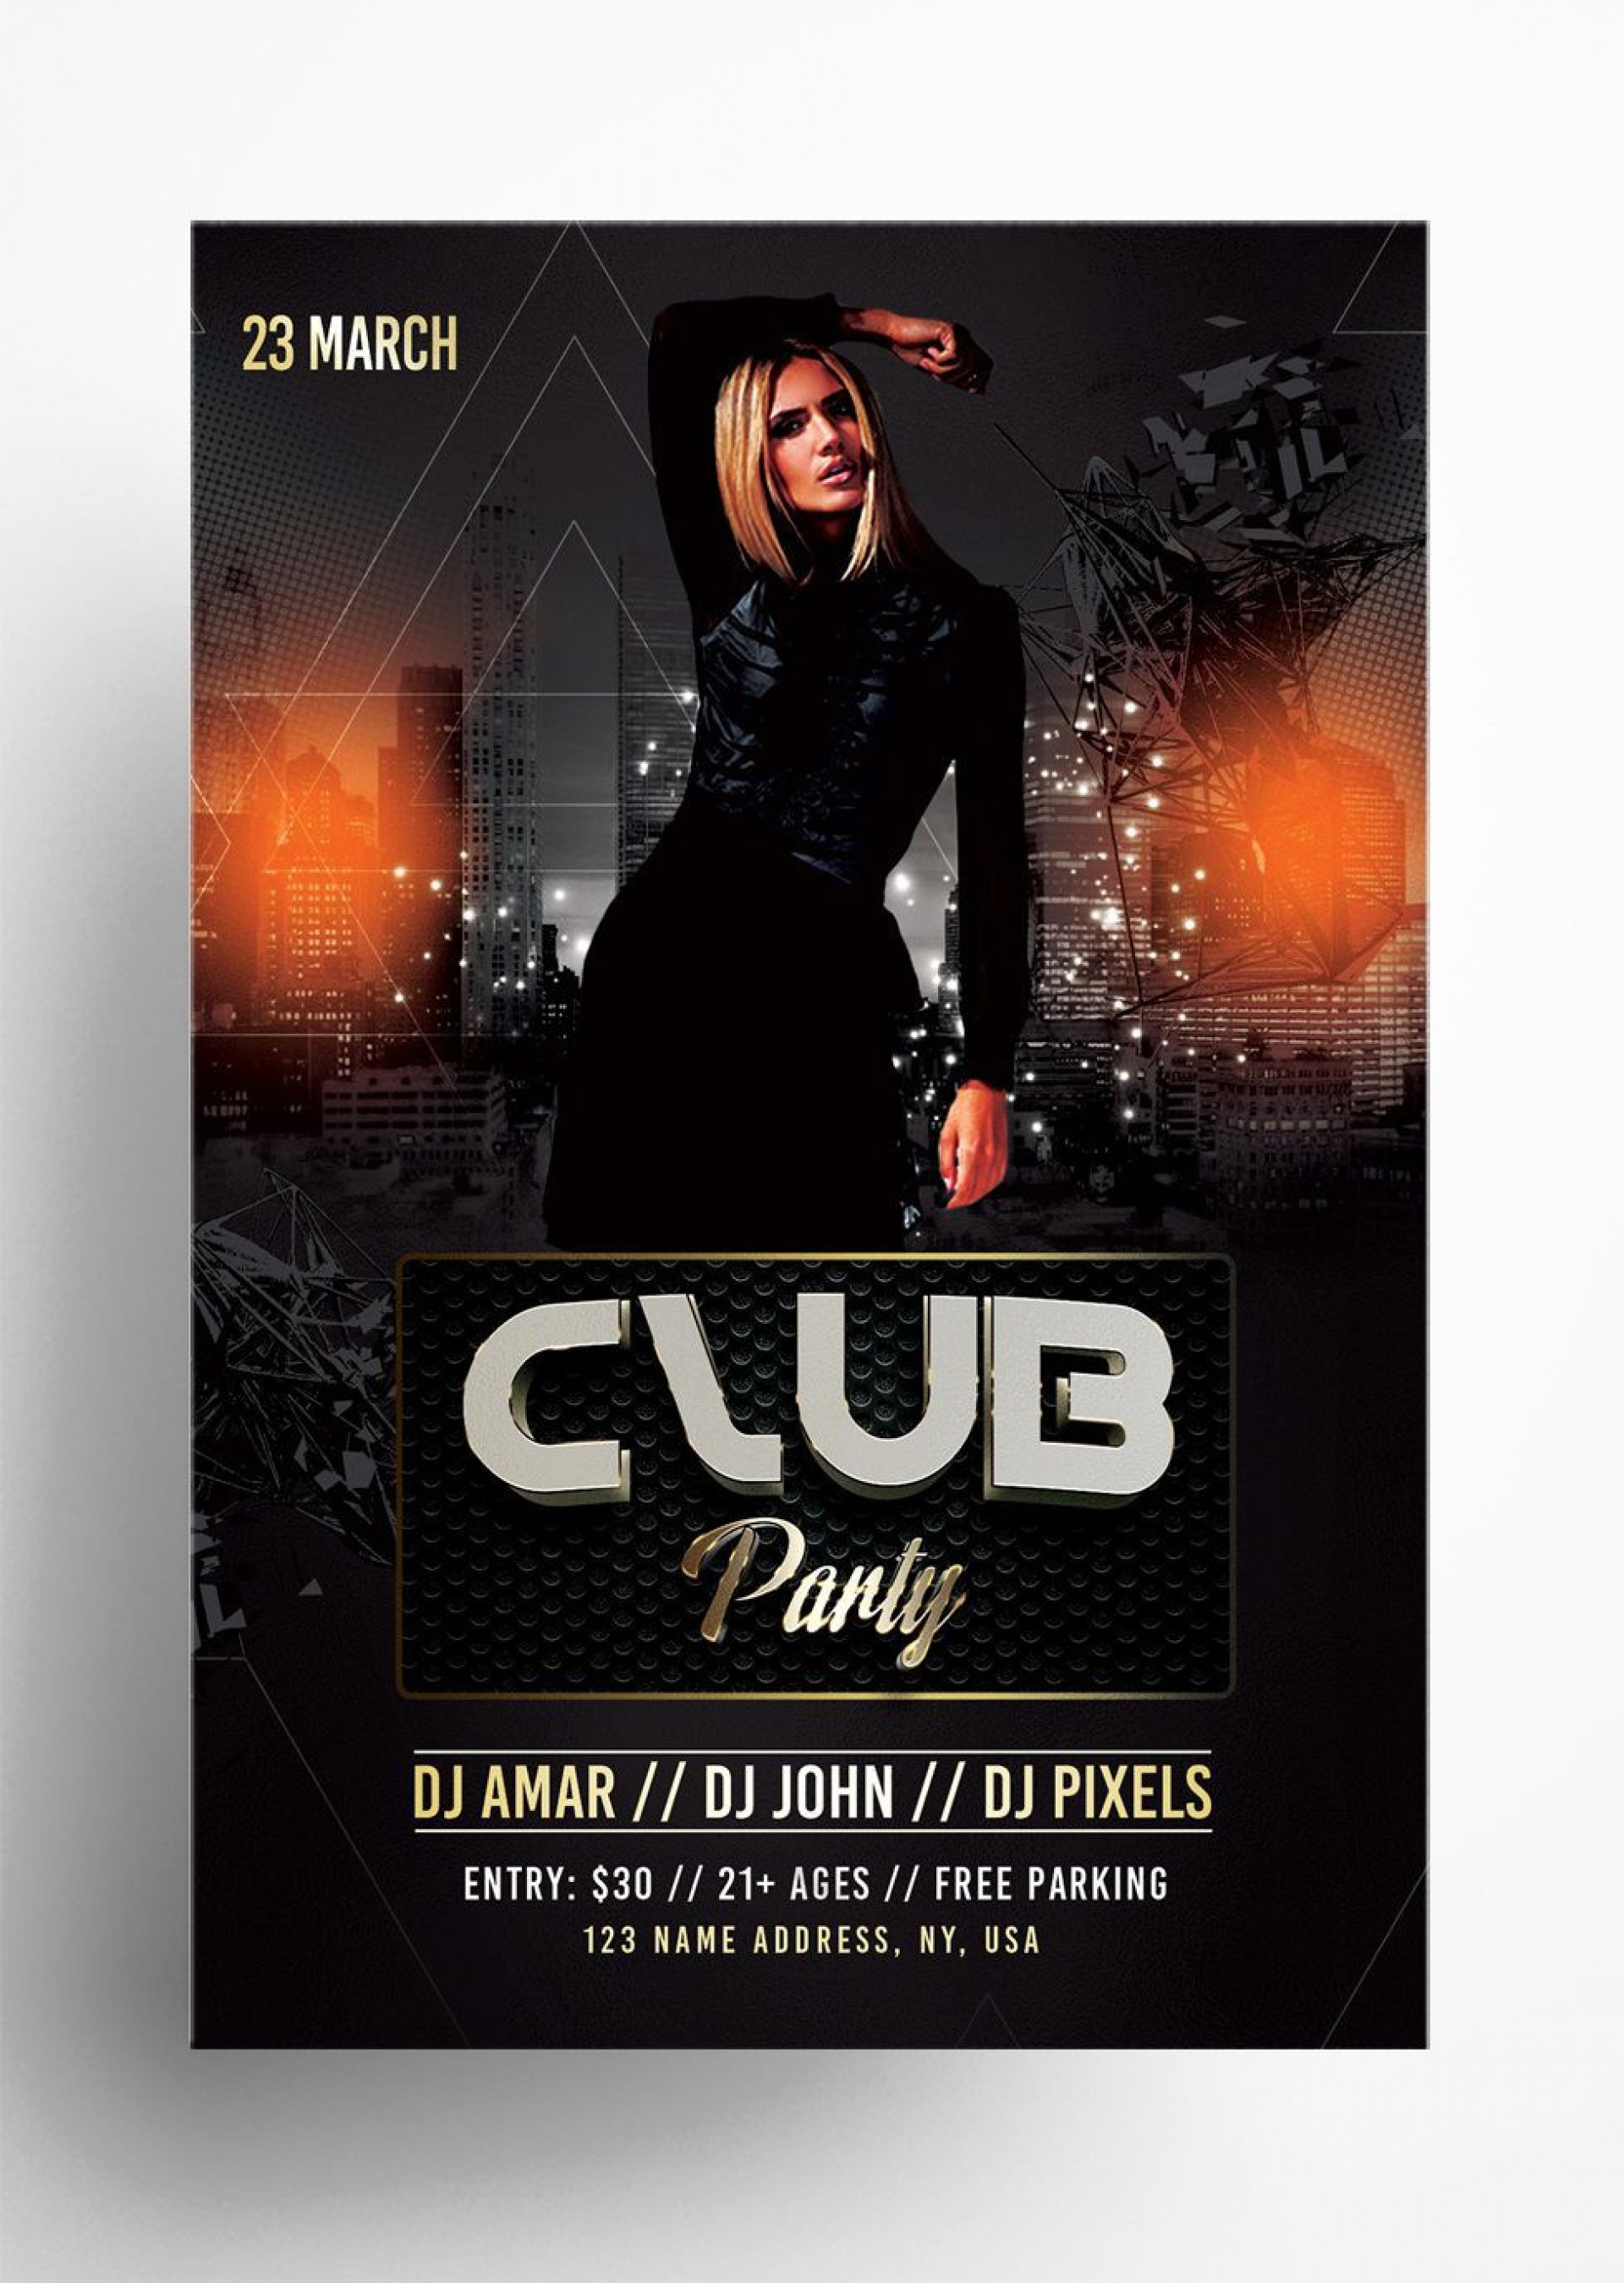 005 Shocking Club Party Flyer Template Free Design 1920